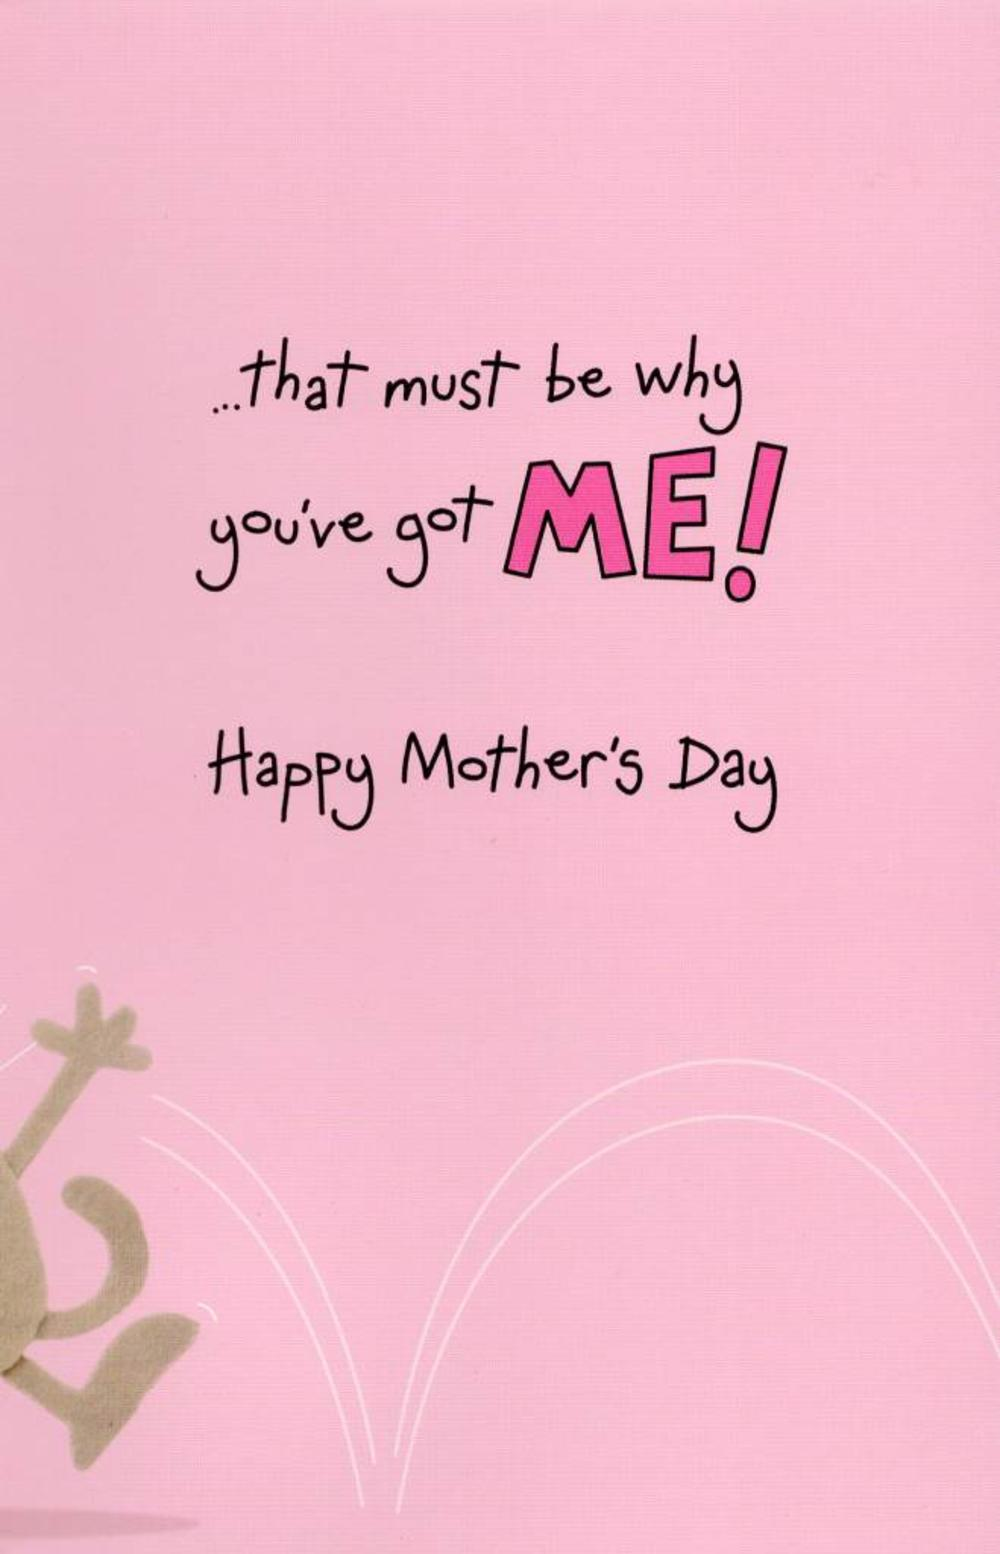 Best Mum In World Mother's Day Card With Badge   Cards ...